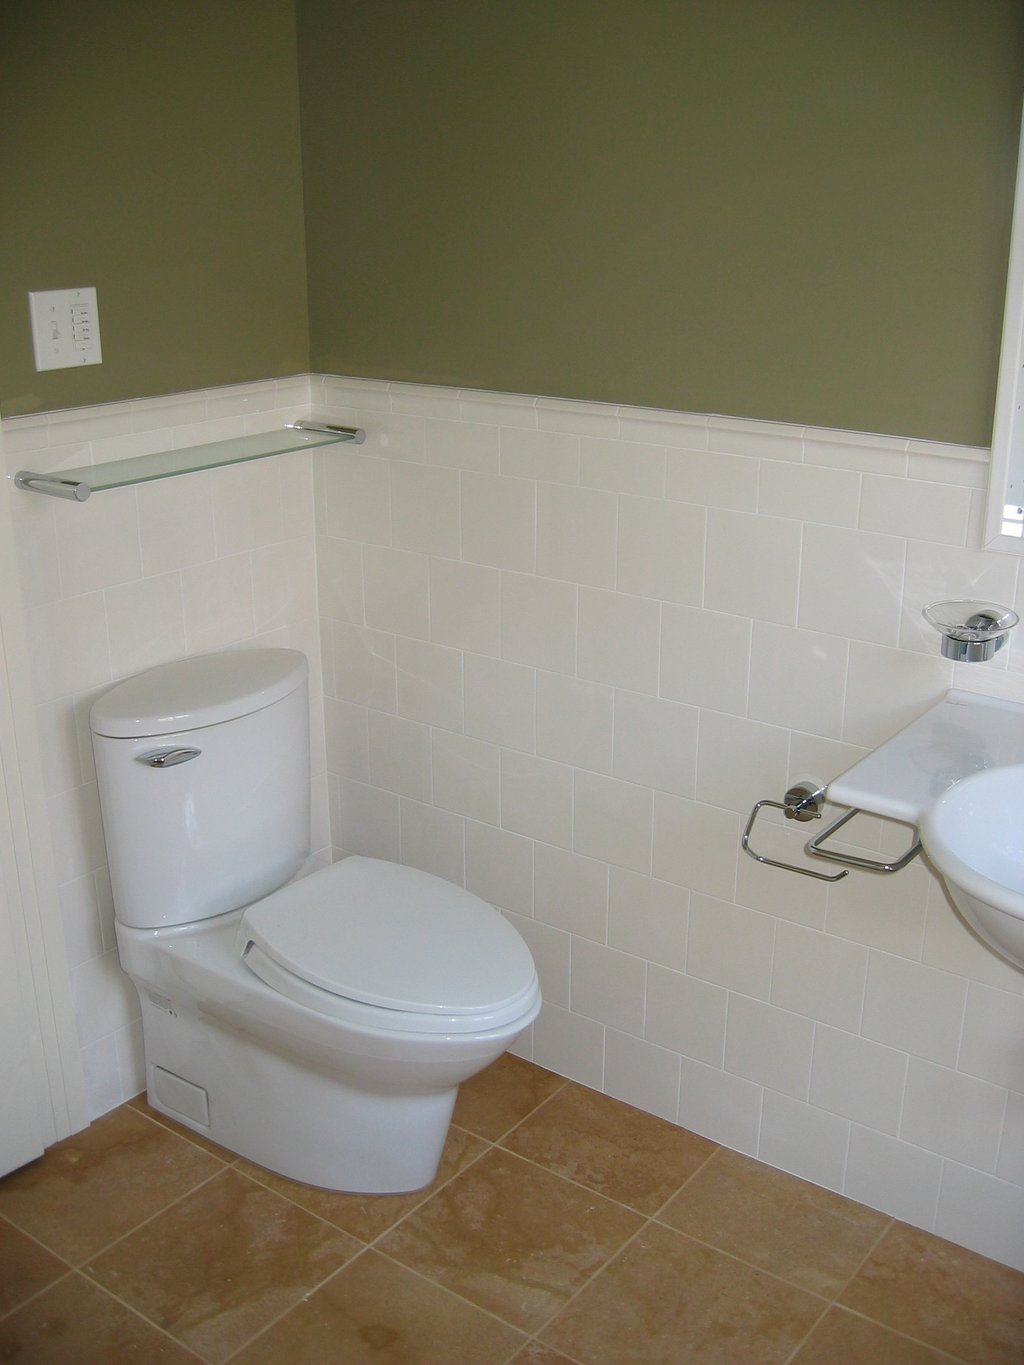 Outstanding Wainscot Bathroom Picture Image Design Idea How To Build A Wooden Bathtub Stool